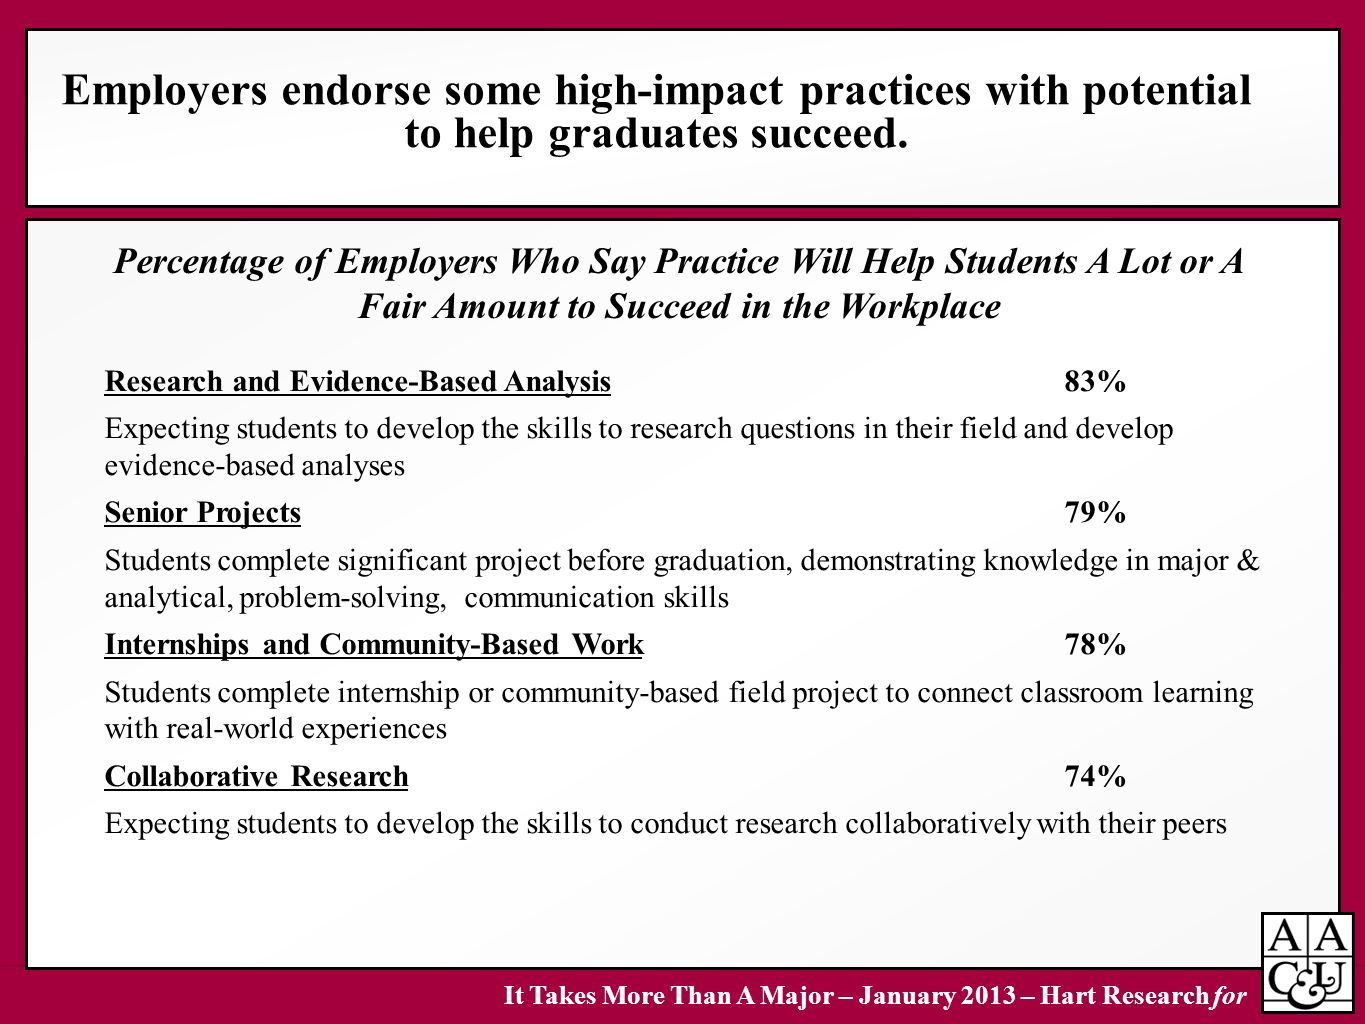 Employers endorse some high-impact practices with potential to help graduates succeed.